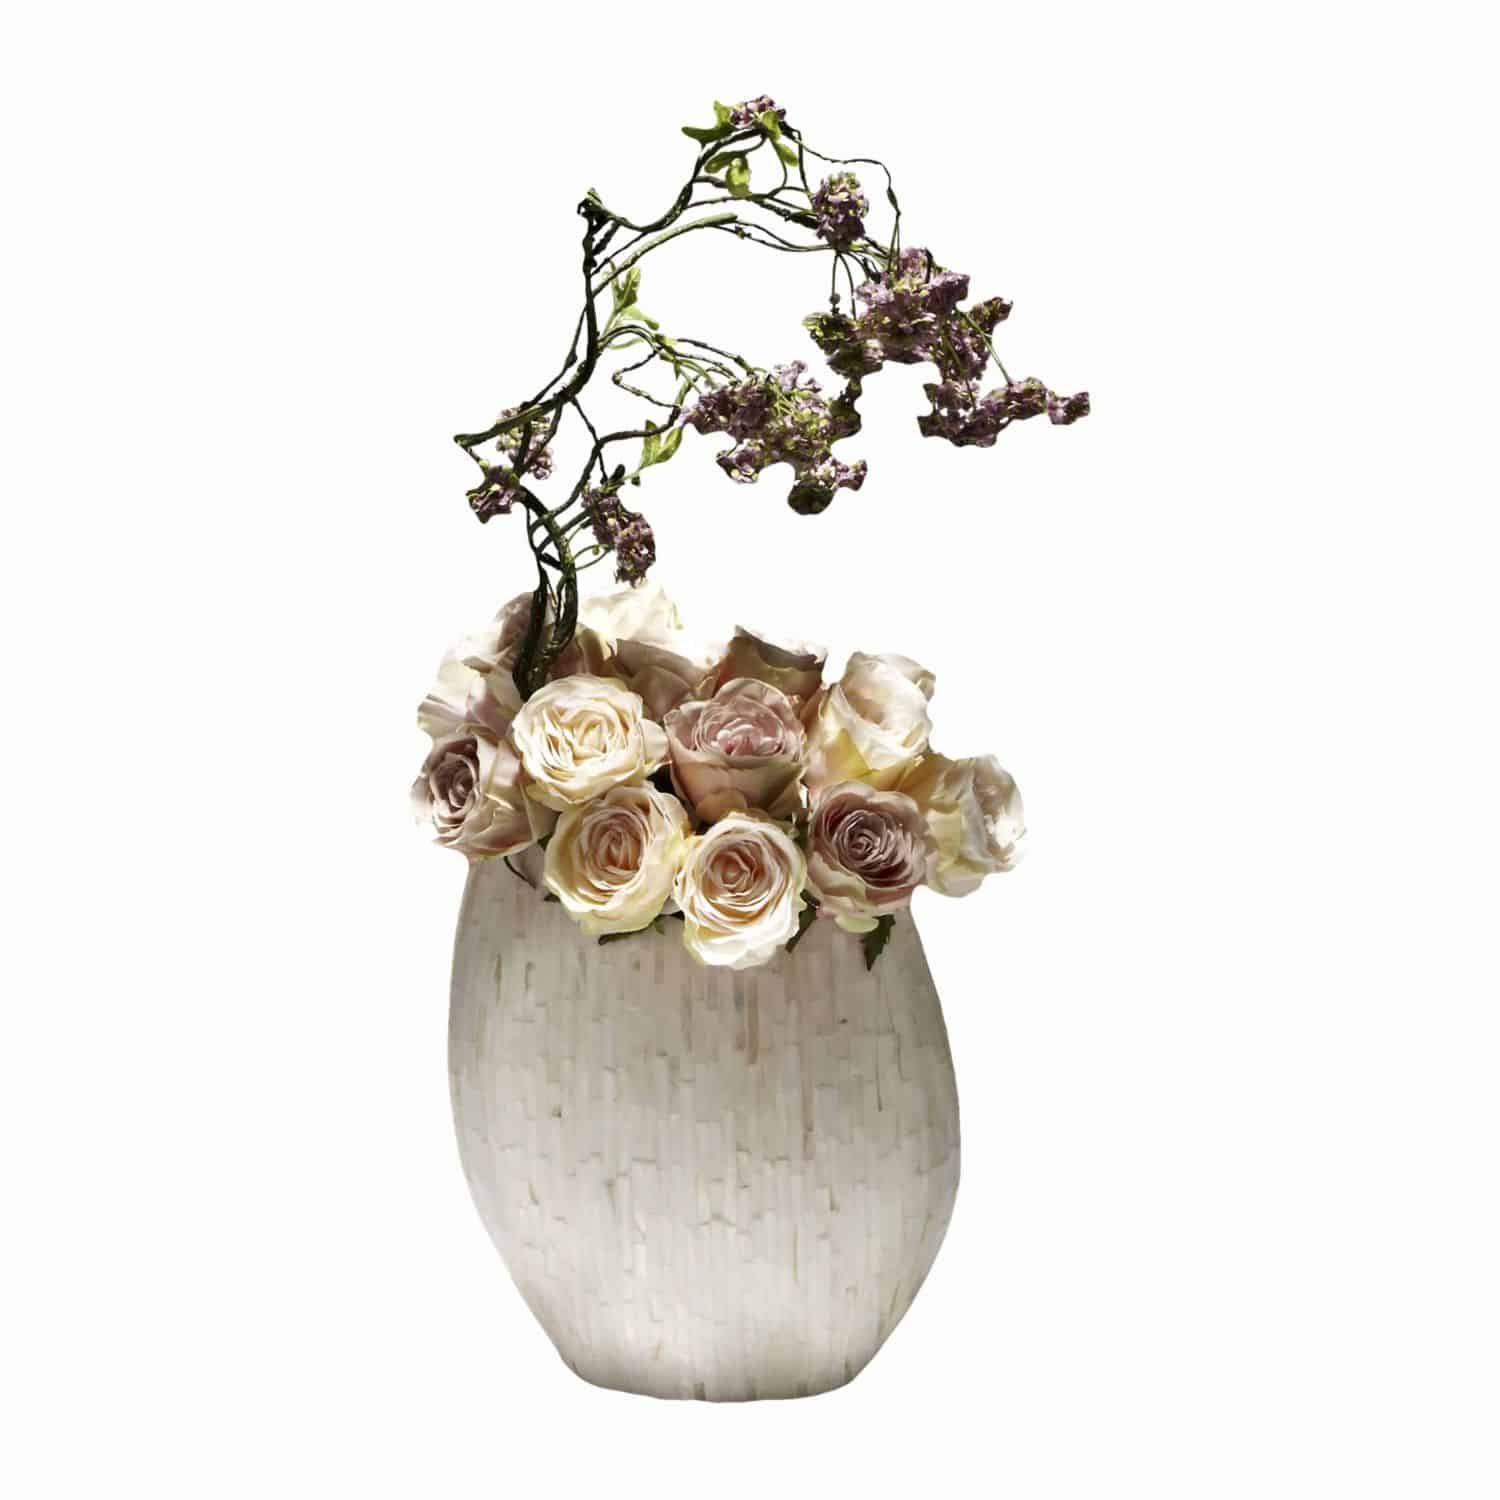 Pin By Jade Method On Floral Pinterest Silk Flowers Silk And Floral